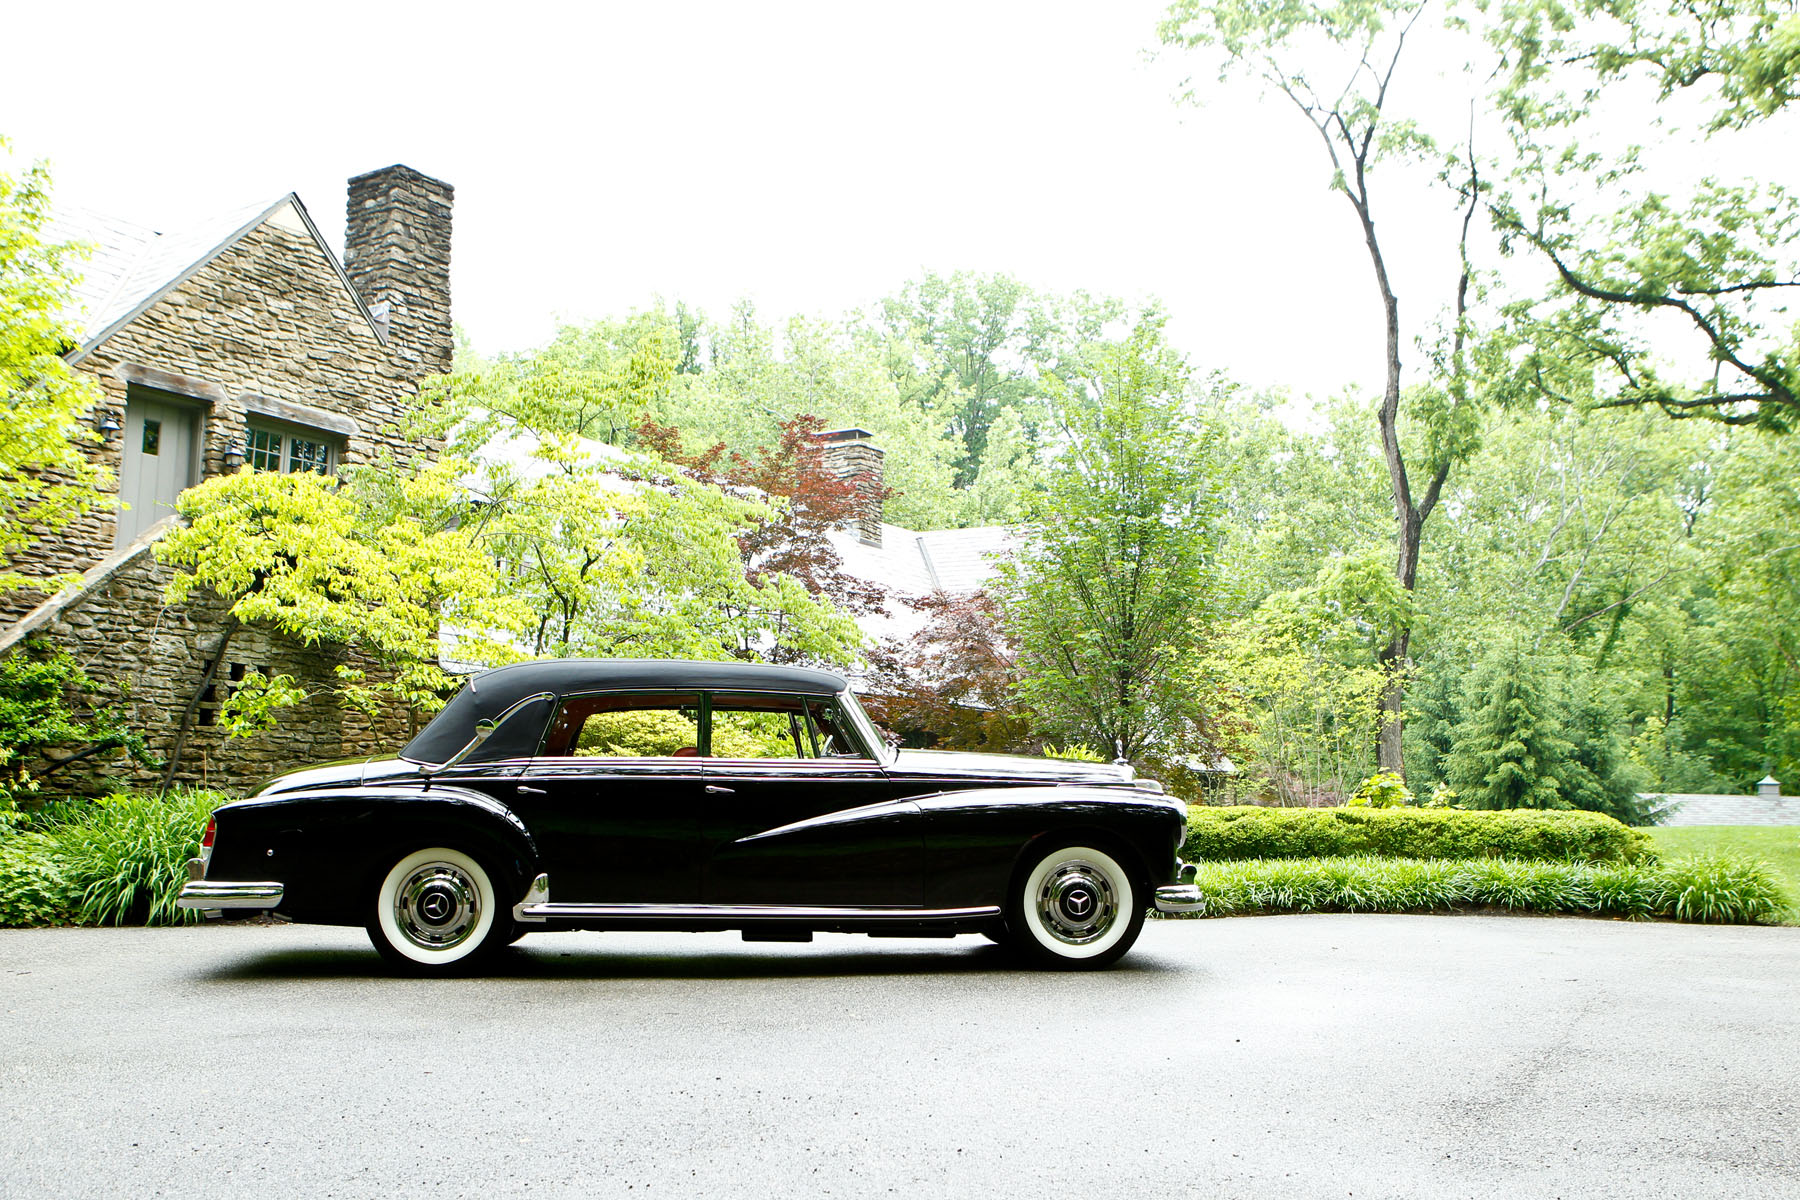 """Continuing Mercedes' long lineage of """"Dropping Lines"""": 1961 Mercedes-Benz 300 D Adenauer Cabriolet (image courtesy of Gooding and Company)"""